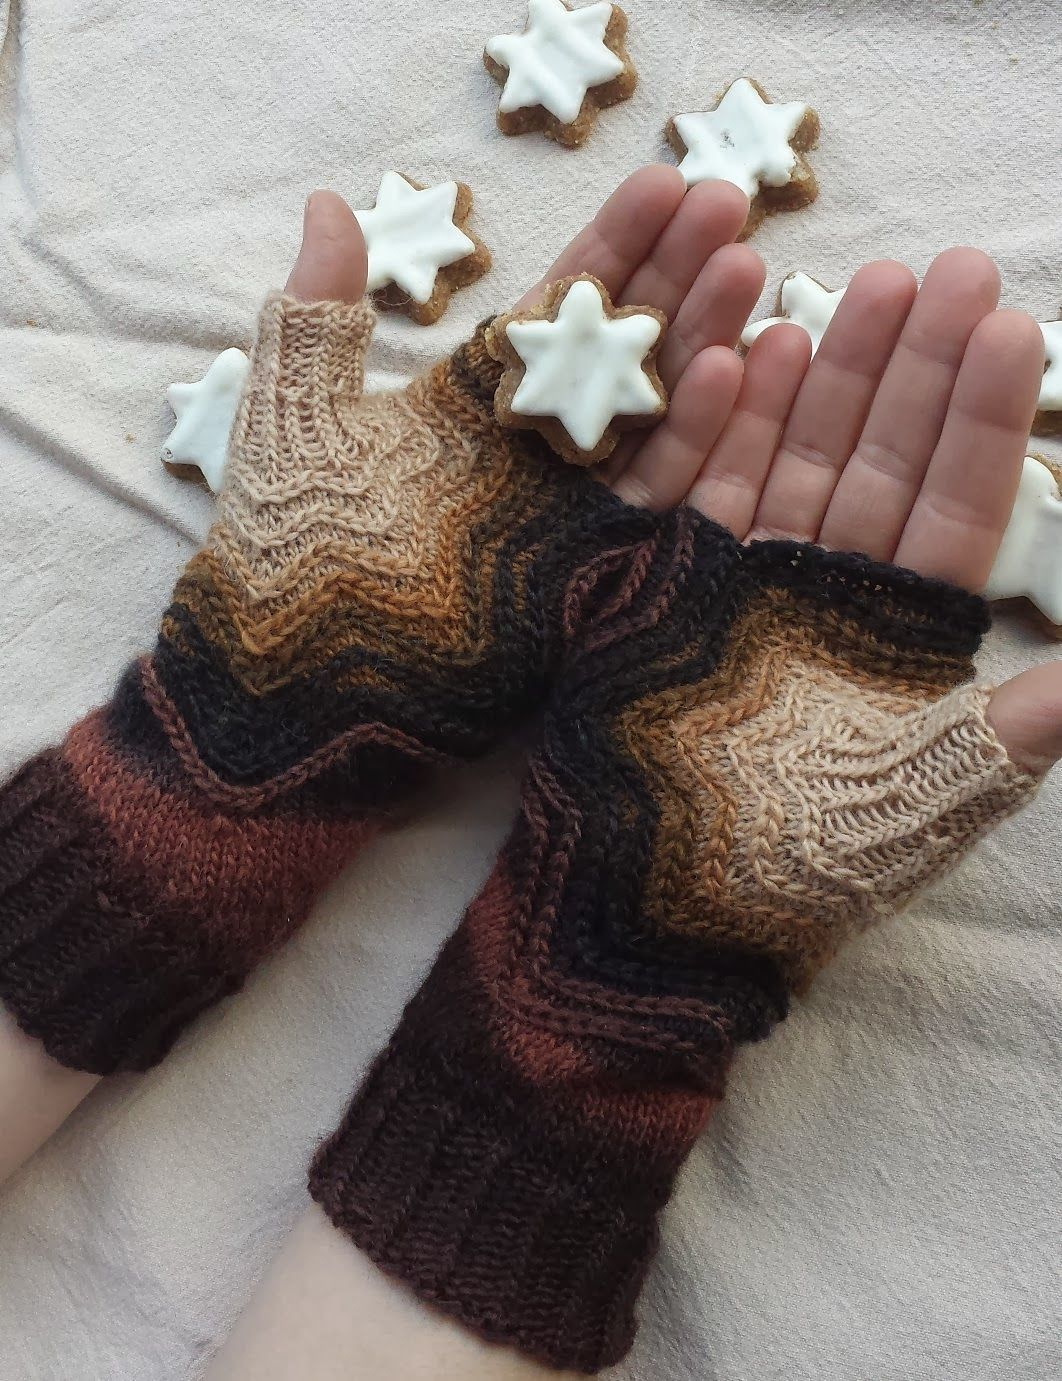 Fingerless Mitts and Gloves Knitting Patterns | Knitting patterns ...